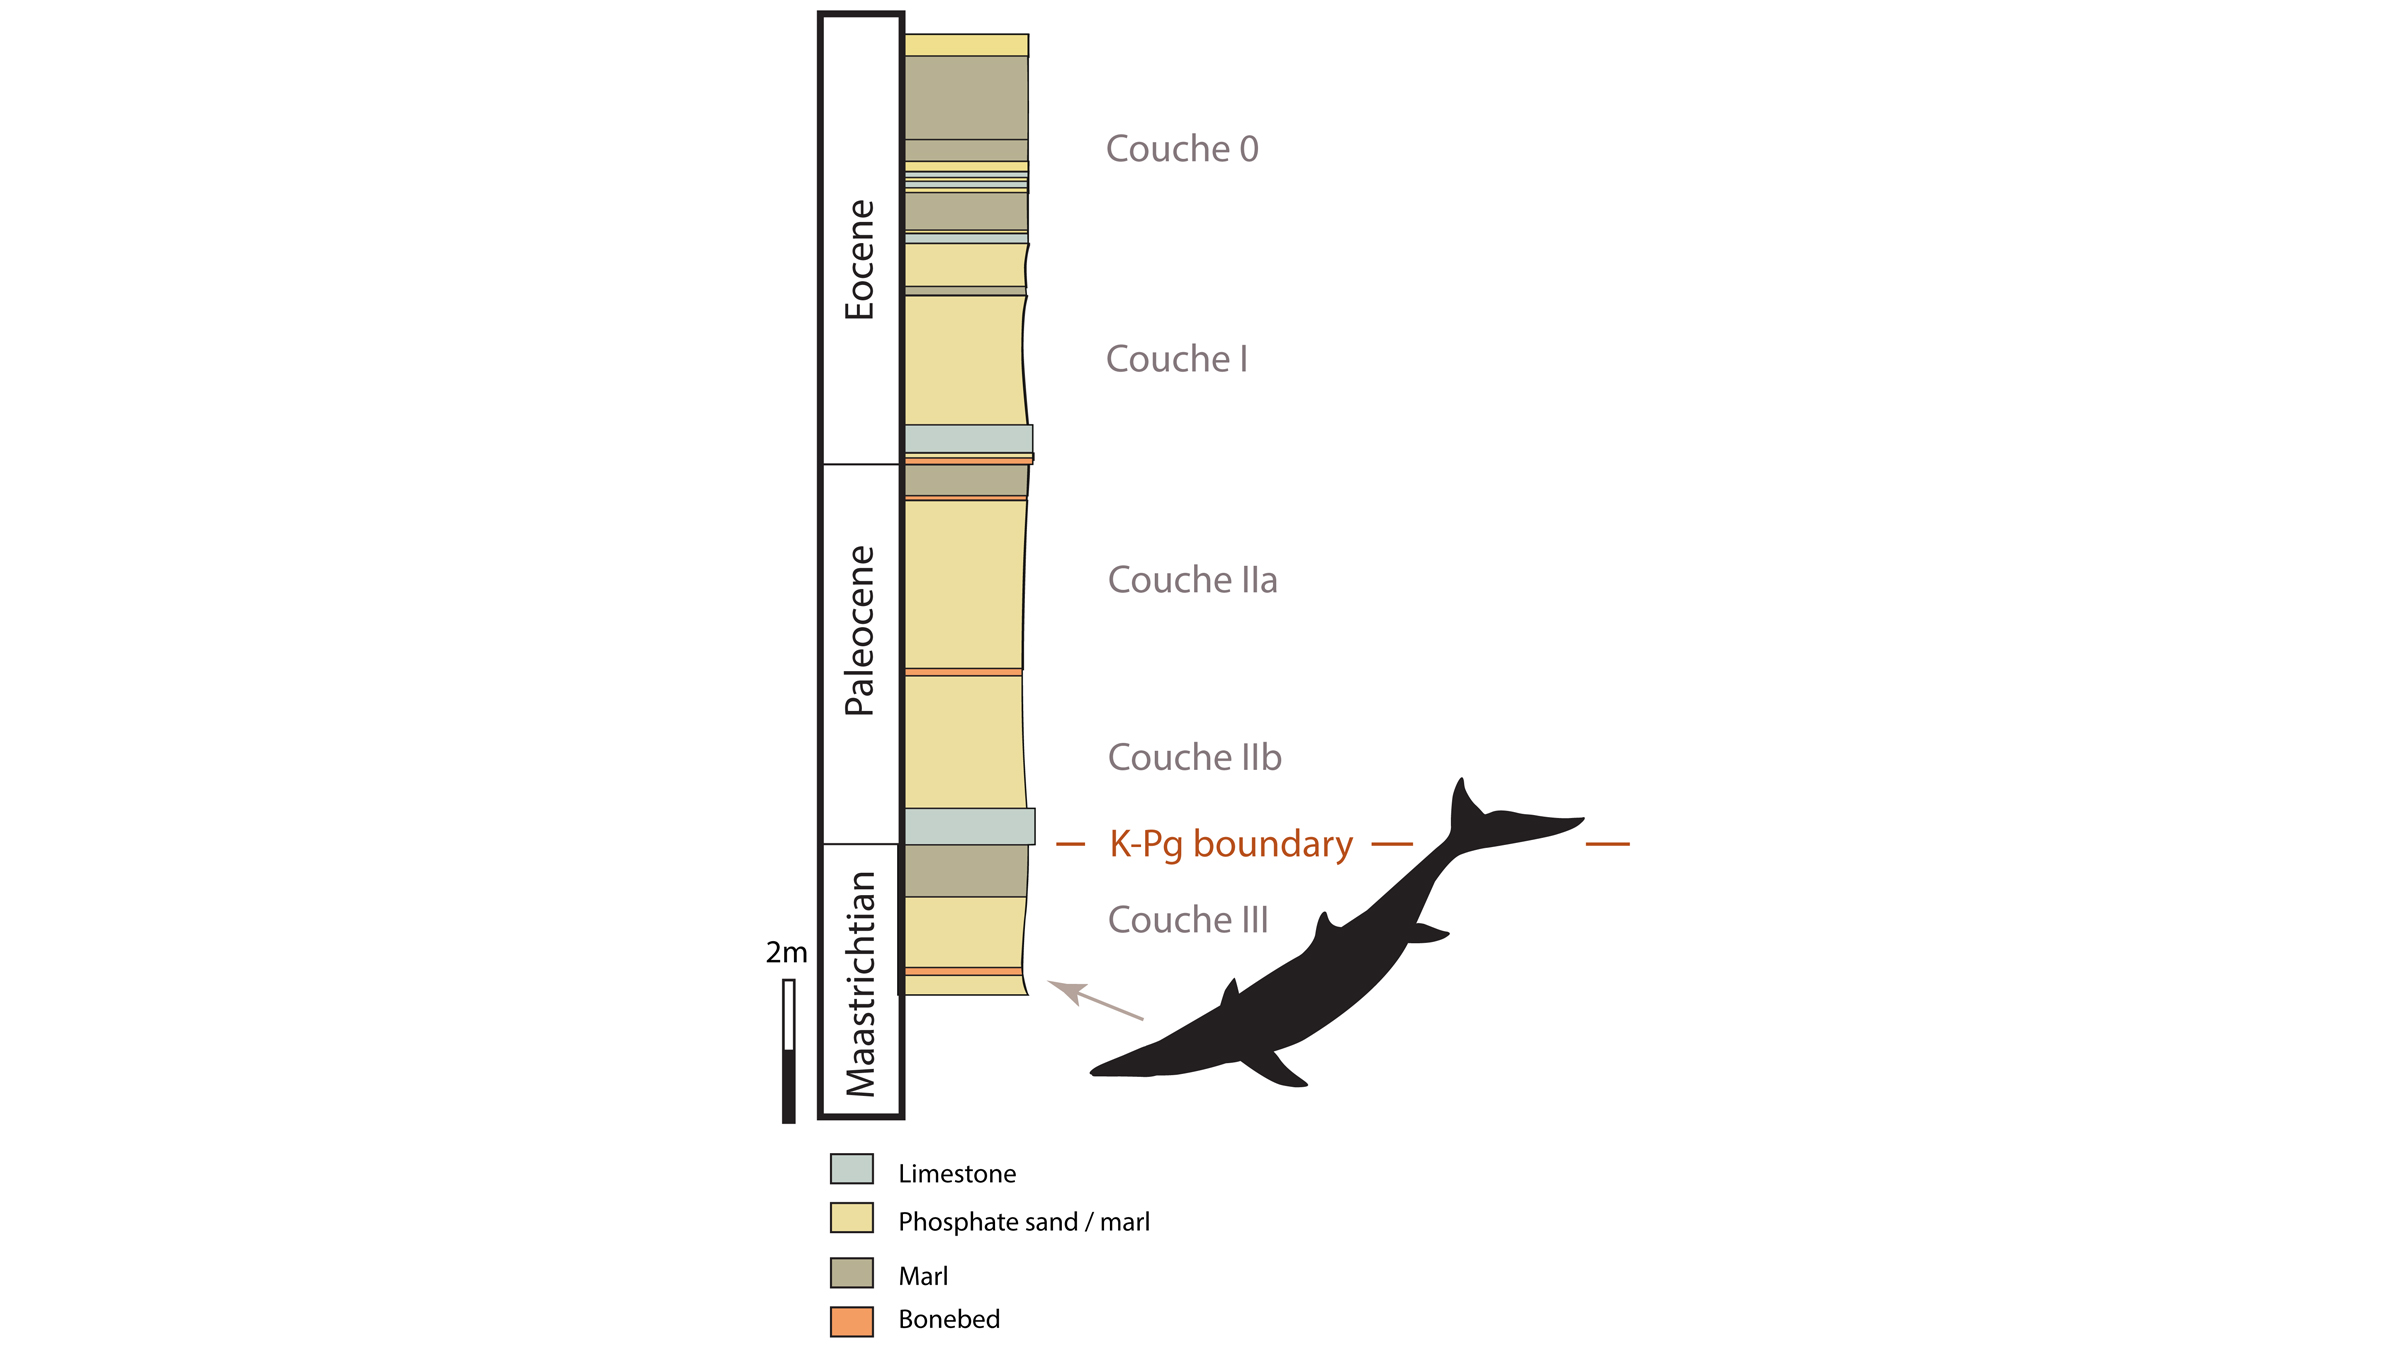 The fossils belonging to the newfound mosasaur were found in rock older than the K-Pg boundary, a term used for the mass extinction that killed the non-avian dinosaurs.